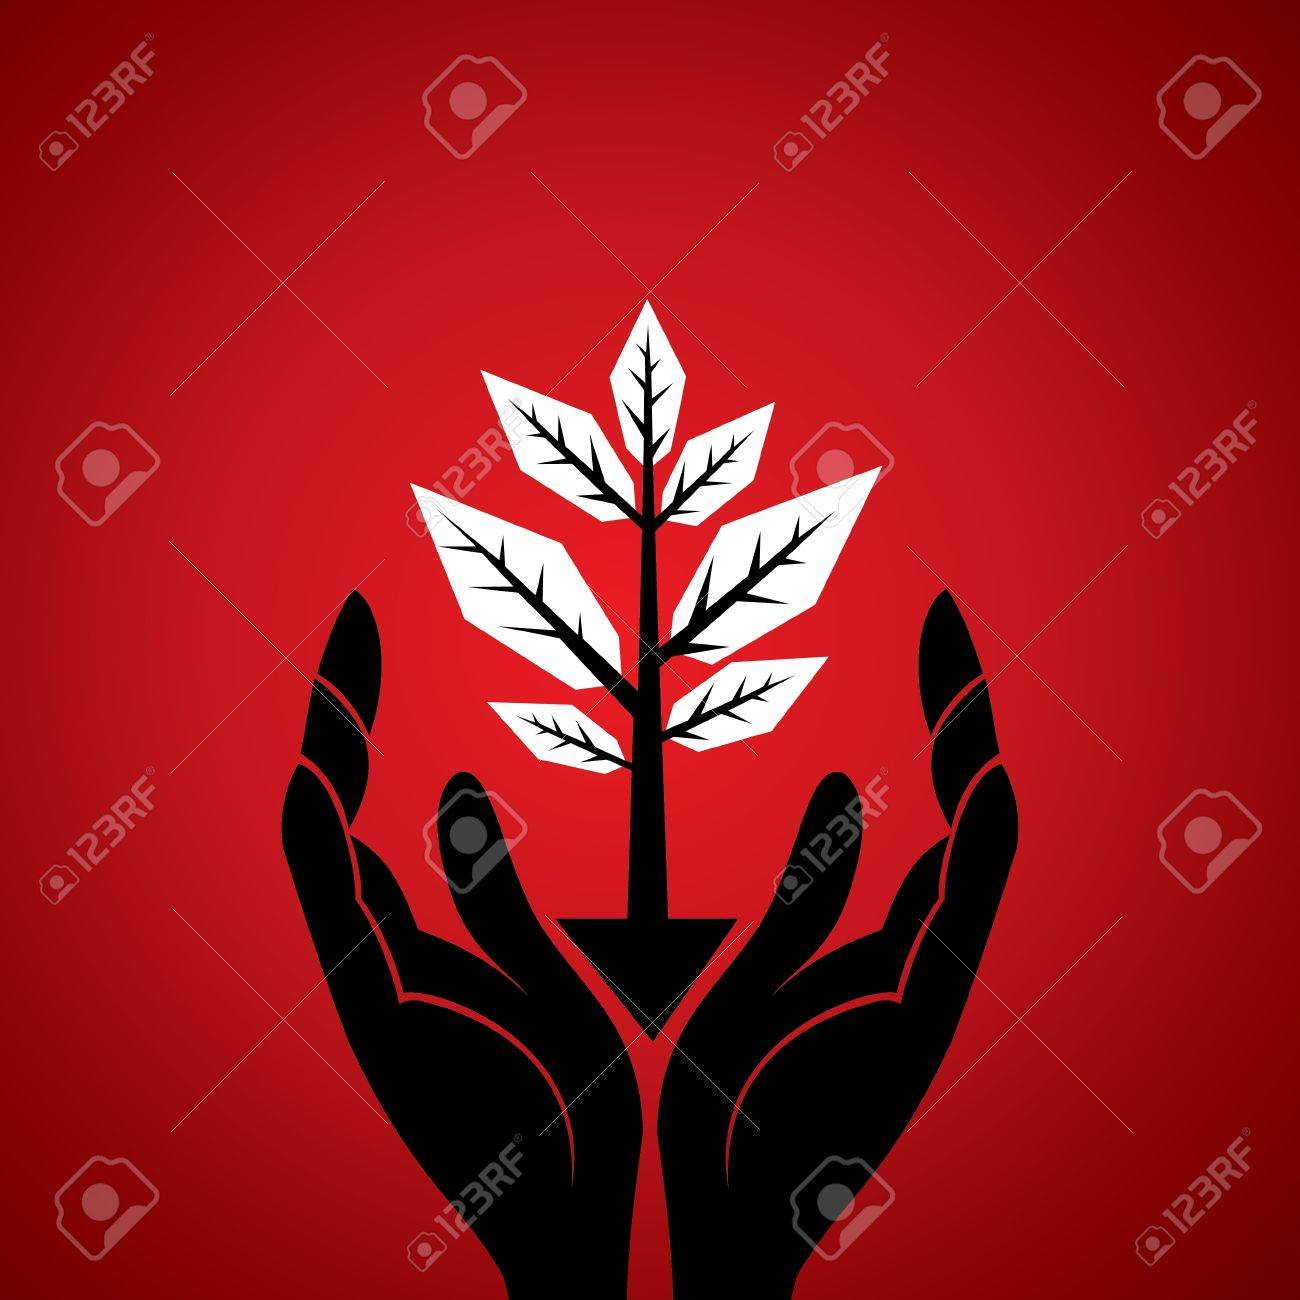 save tree concept under hand stock Stock Vector - 18398089